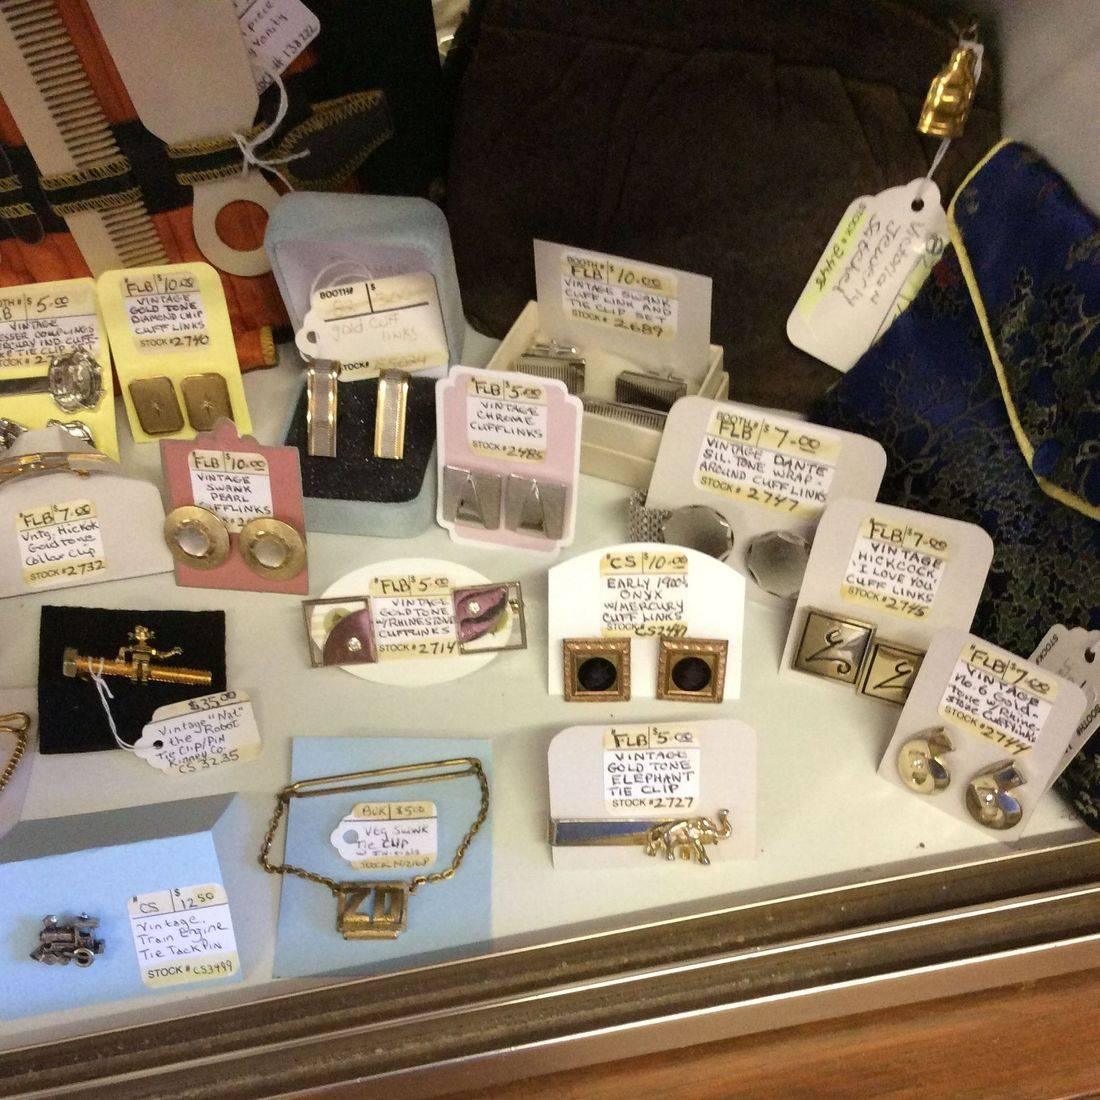 Vintage Cuff Links and Tie Clips - $5.00 to $35.00